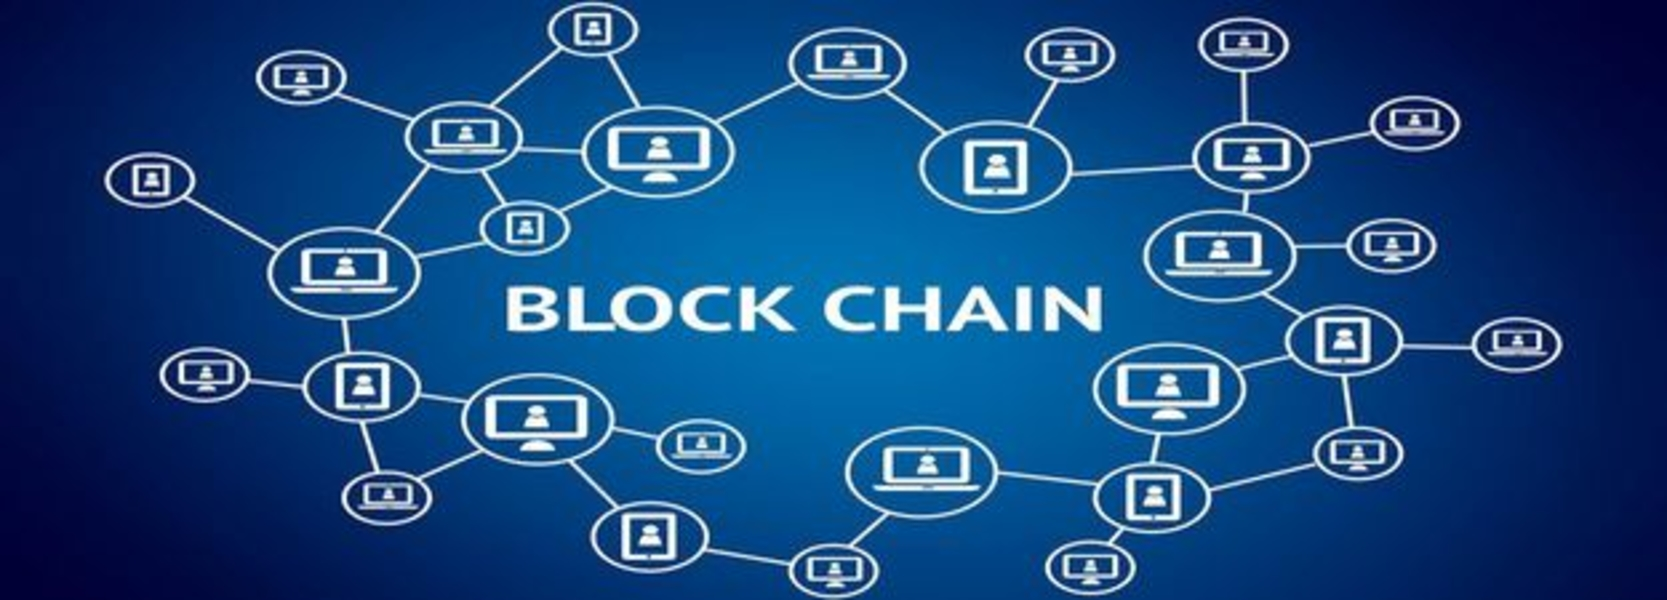 Free Online Course: Understanding Blockchain Uses and Implications